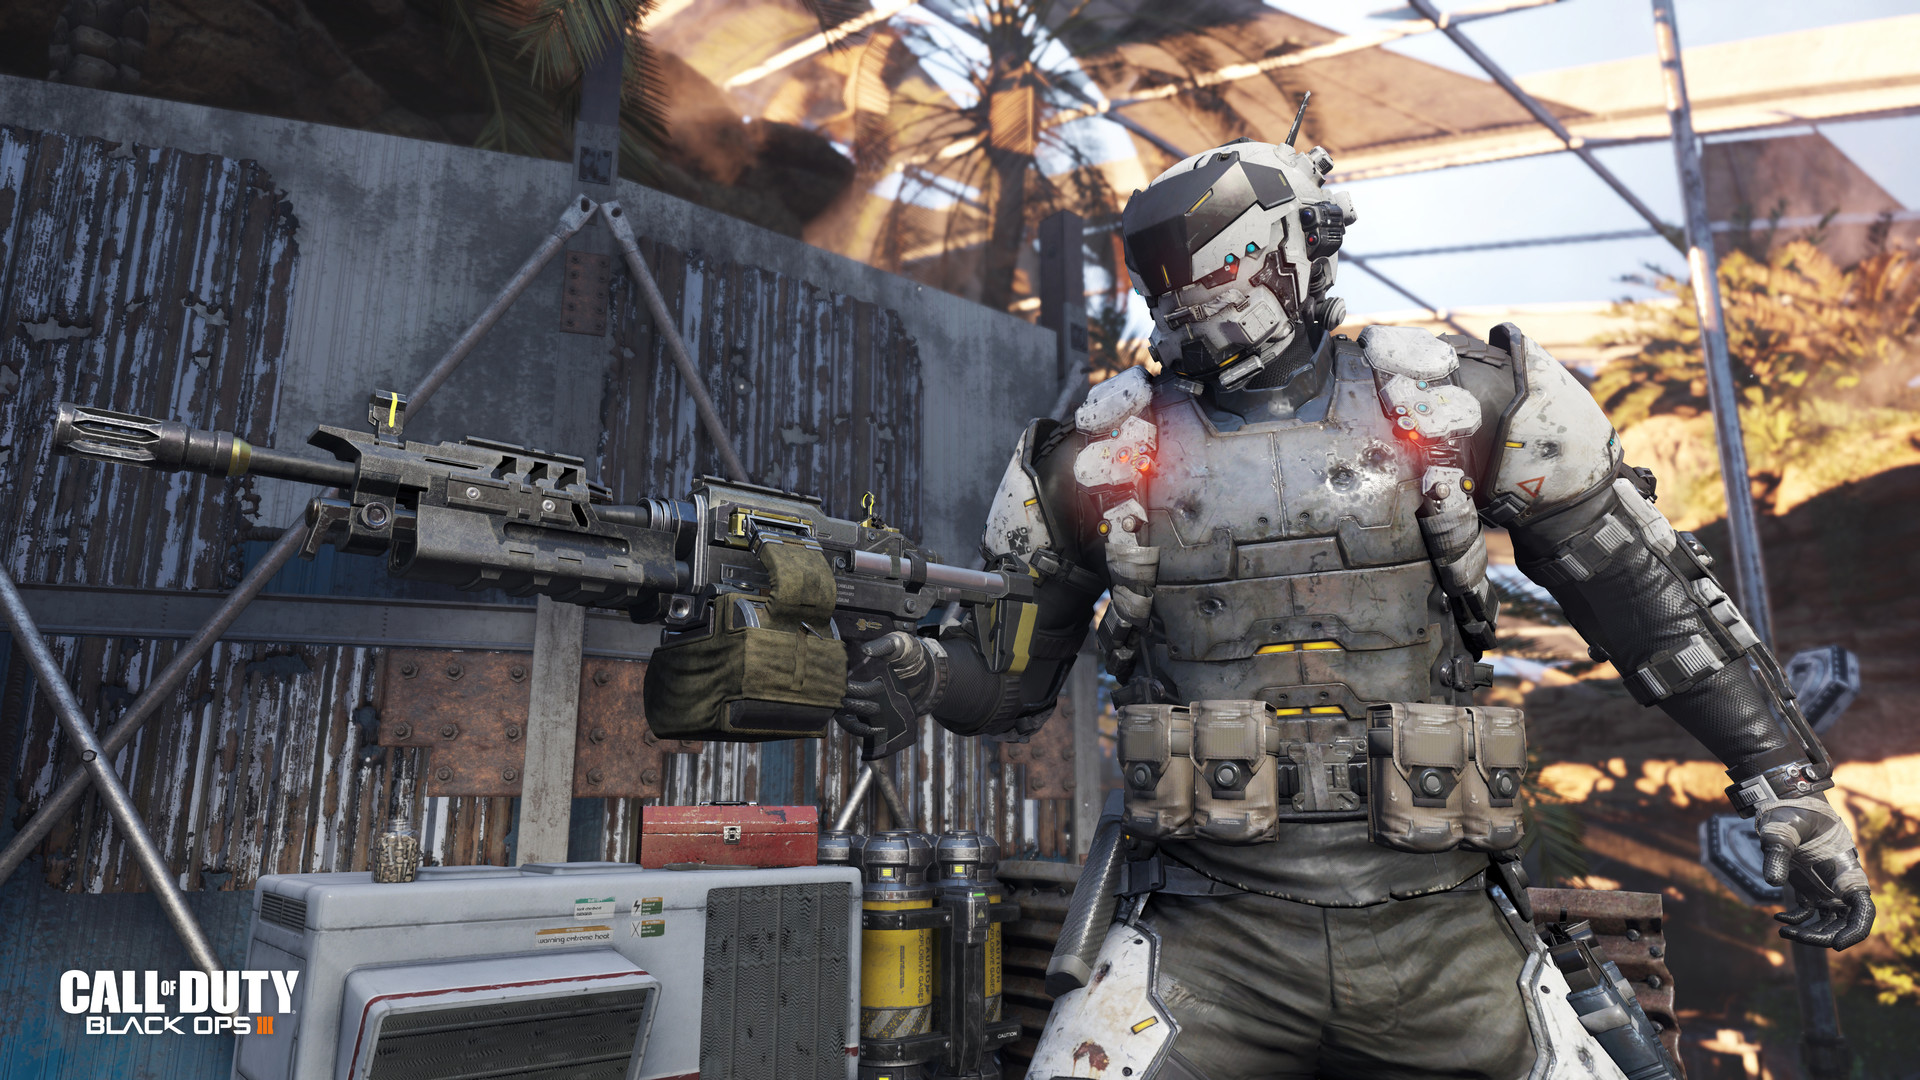 Call of Duty: Black Ops III image 3